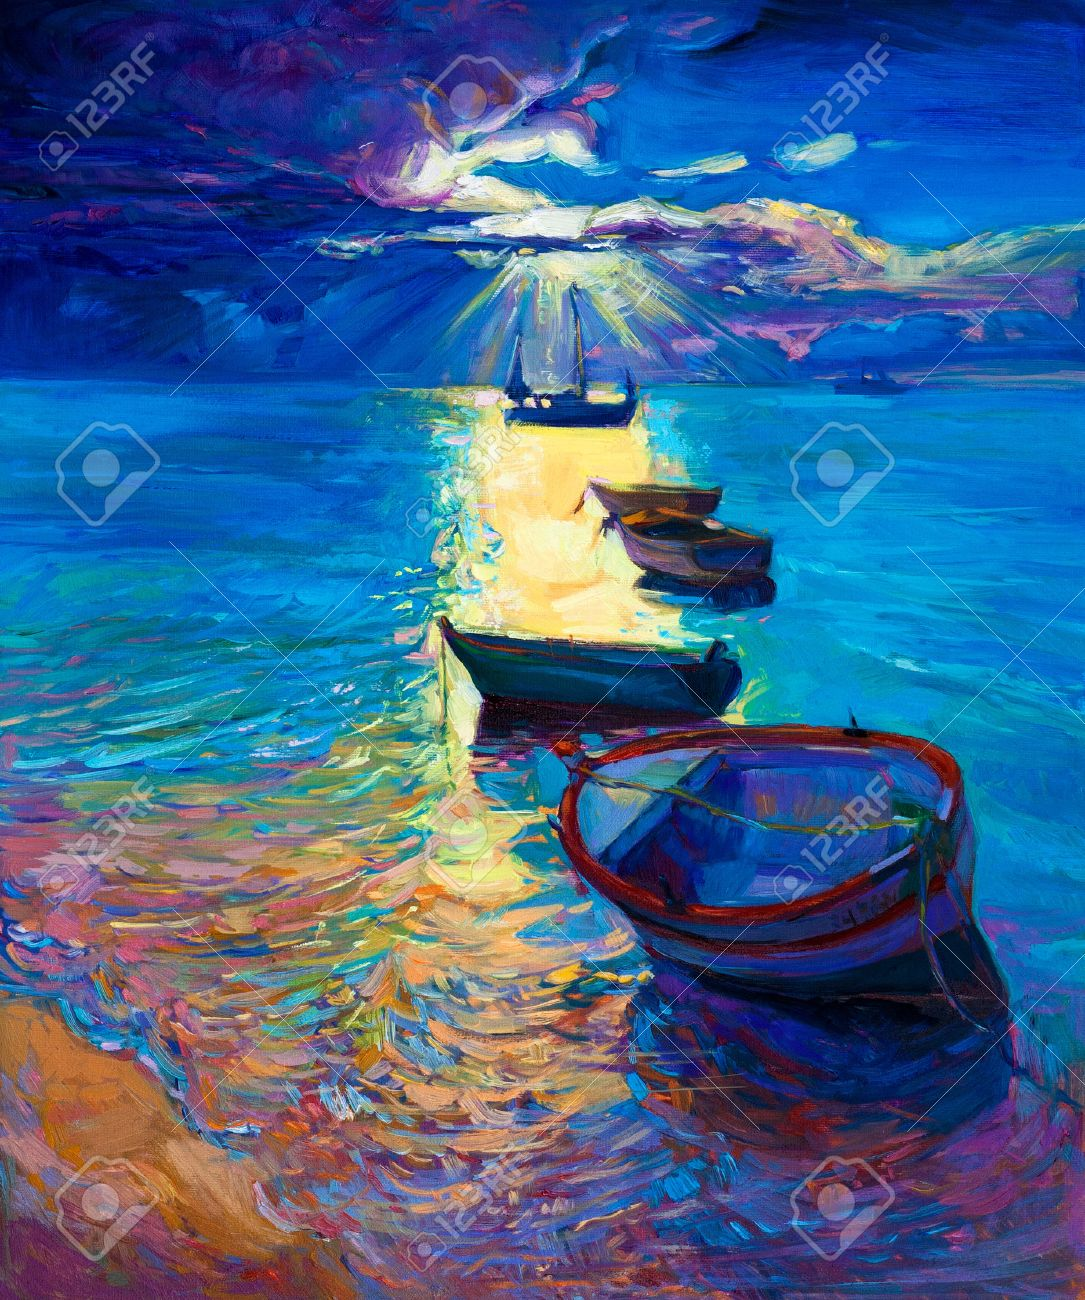 Original Abstract Oil Painting Of Fishing Boats And Sea On Canvas Sunset Stock Photo Picture And Royalty Free Image Image 26924634